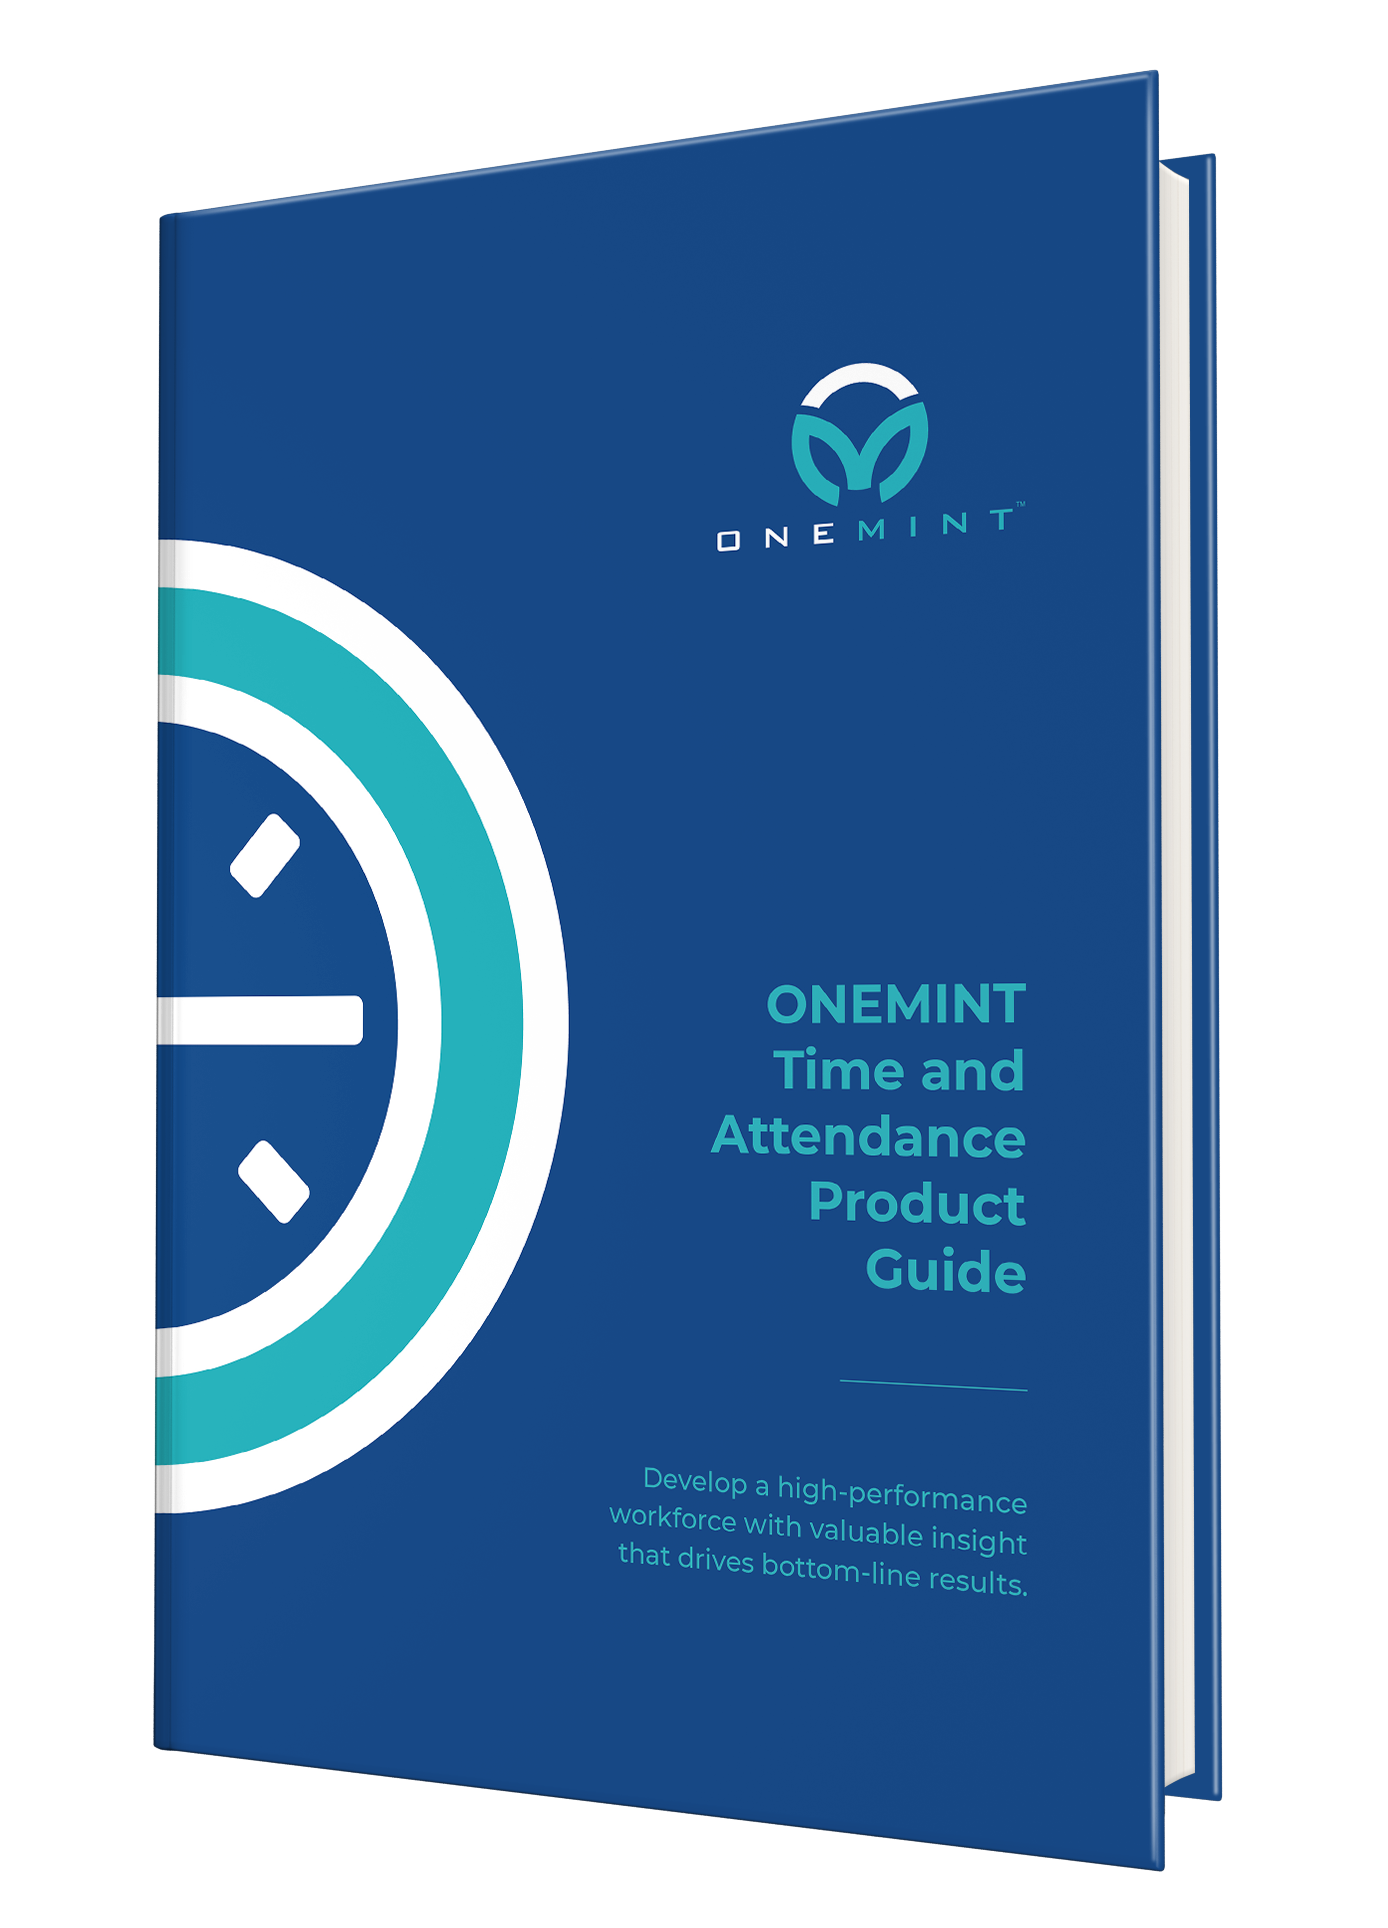 onemint-time-and-attendance-product-guide-2018